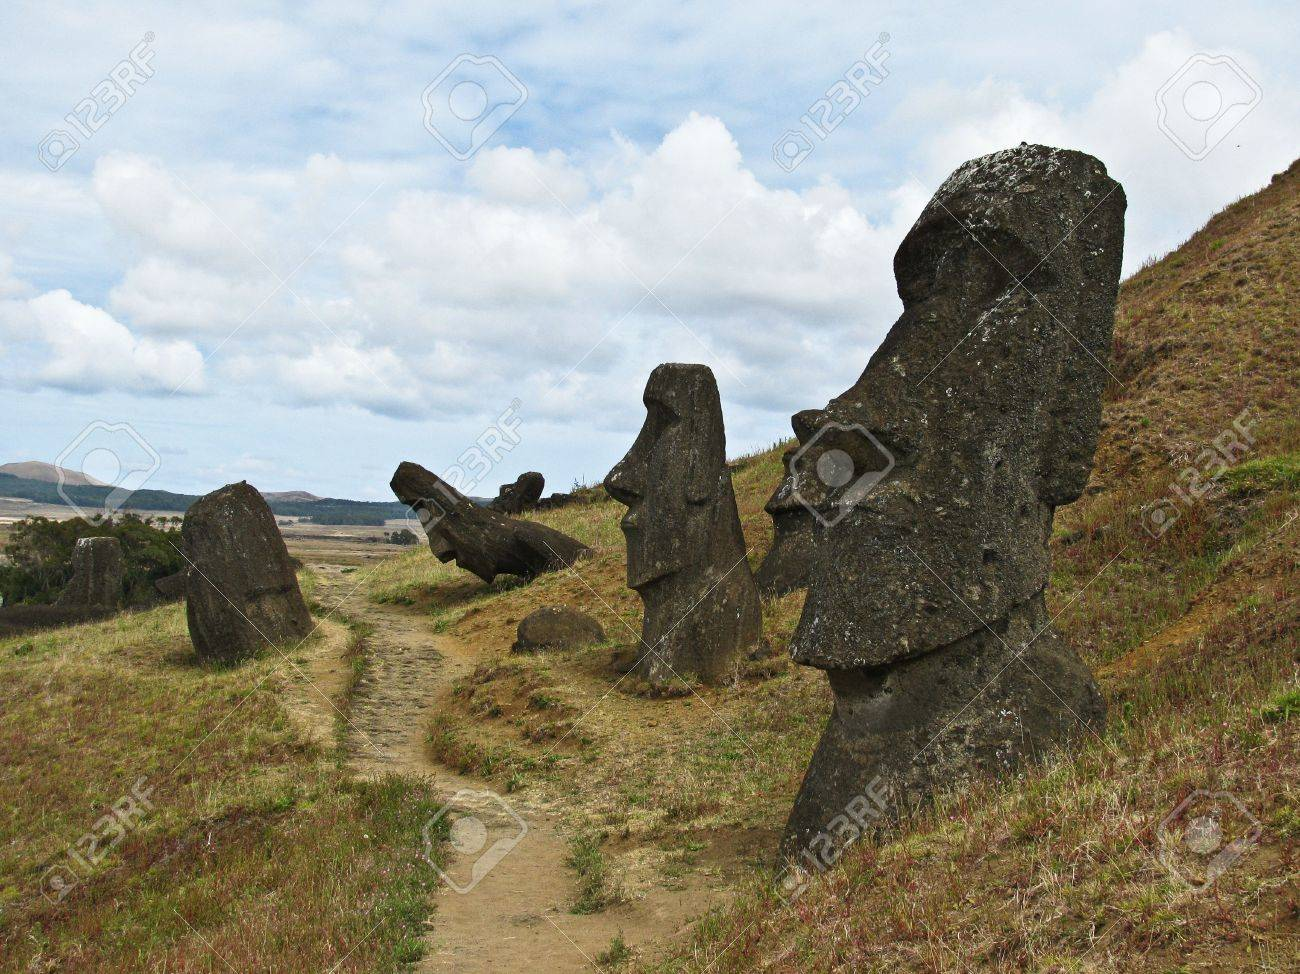 Moai statues of Rano  Raraku on the Polyneasian island of Easter Island. Stock Photo - 4306721